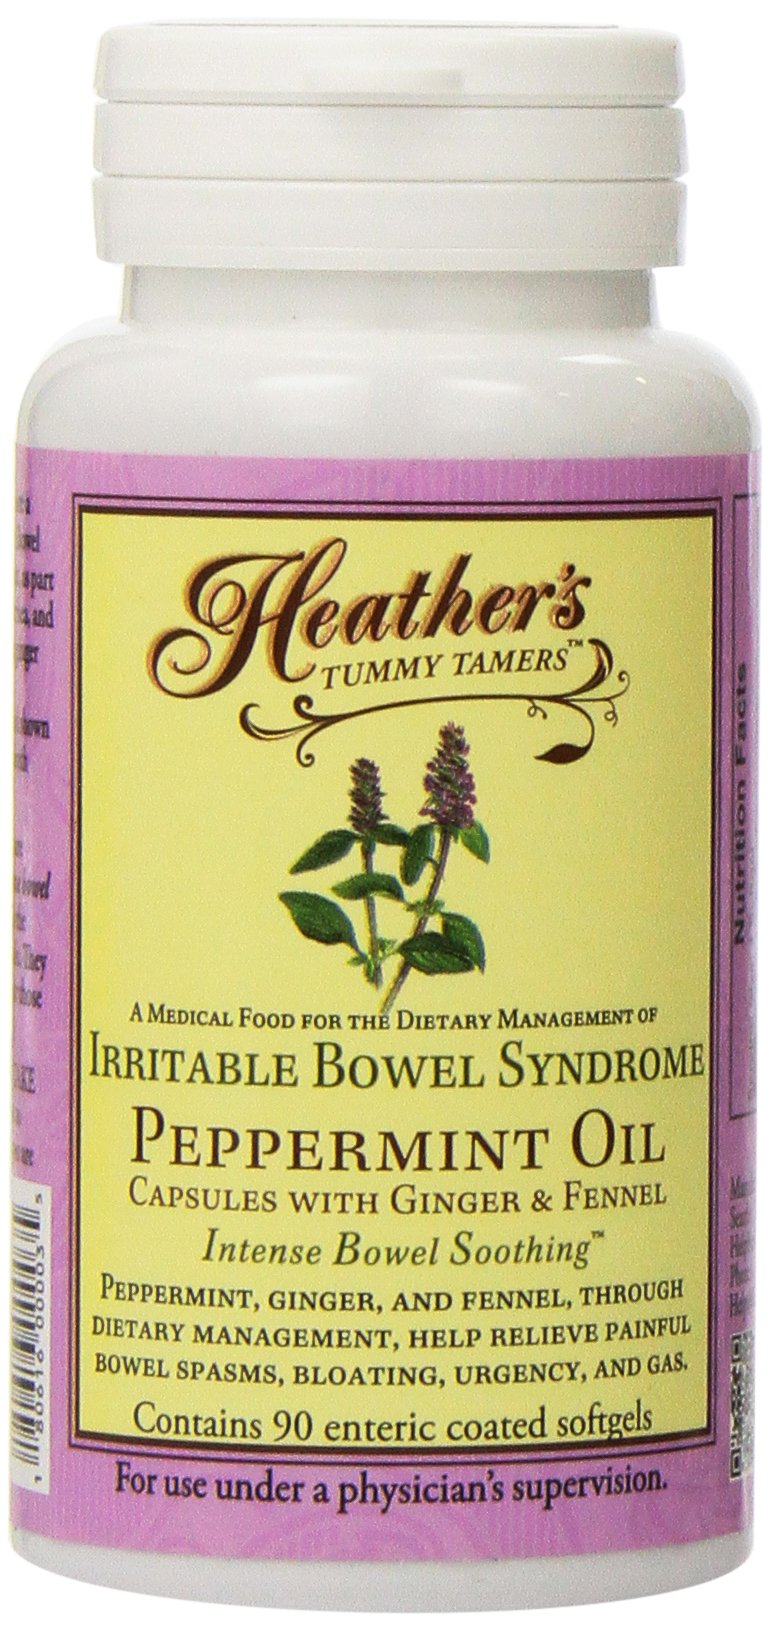 Heather's Tummy Tamers-Peppermint Oil Capsules, 180ct (2 Pack)